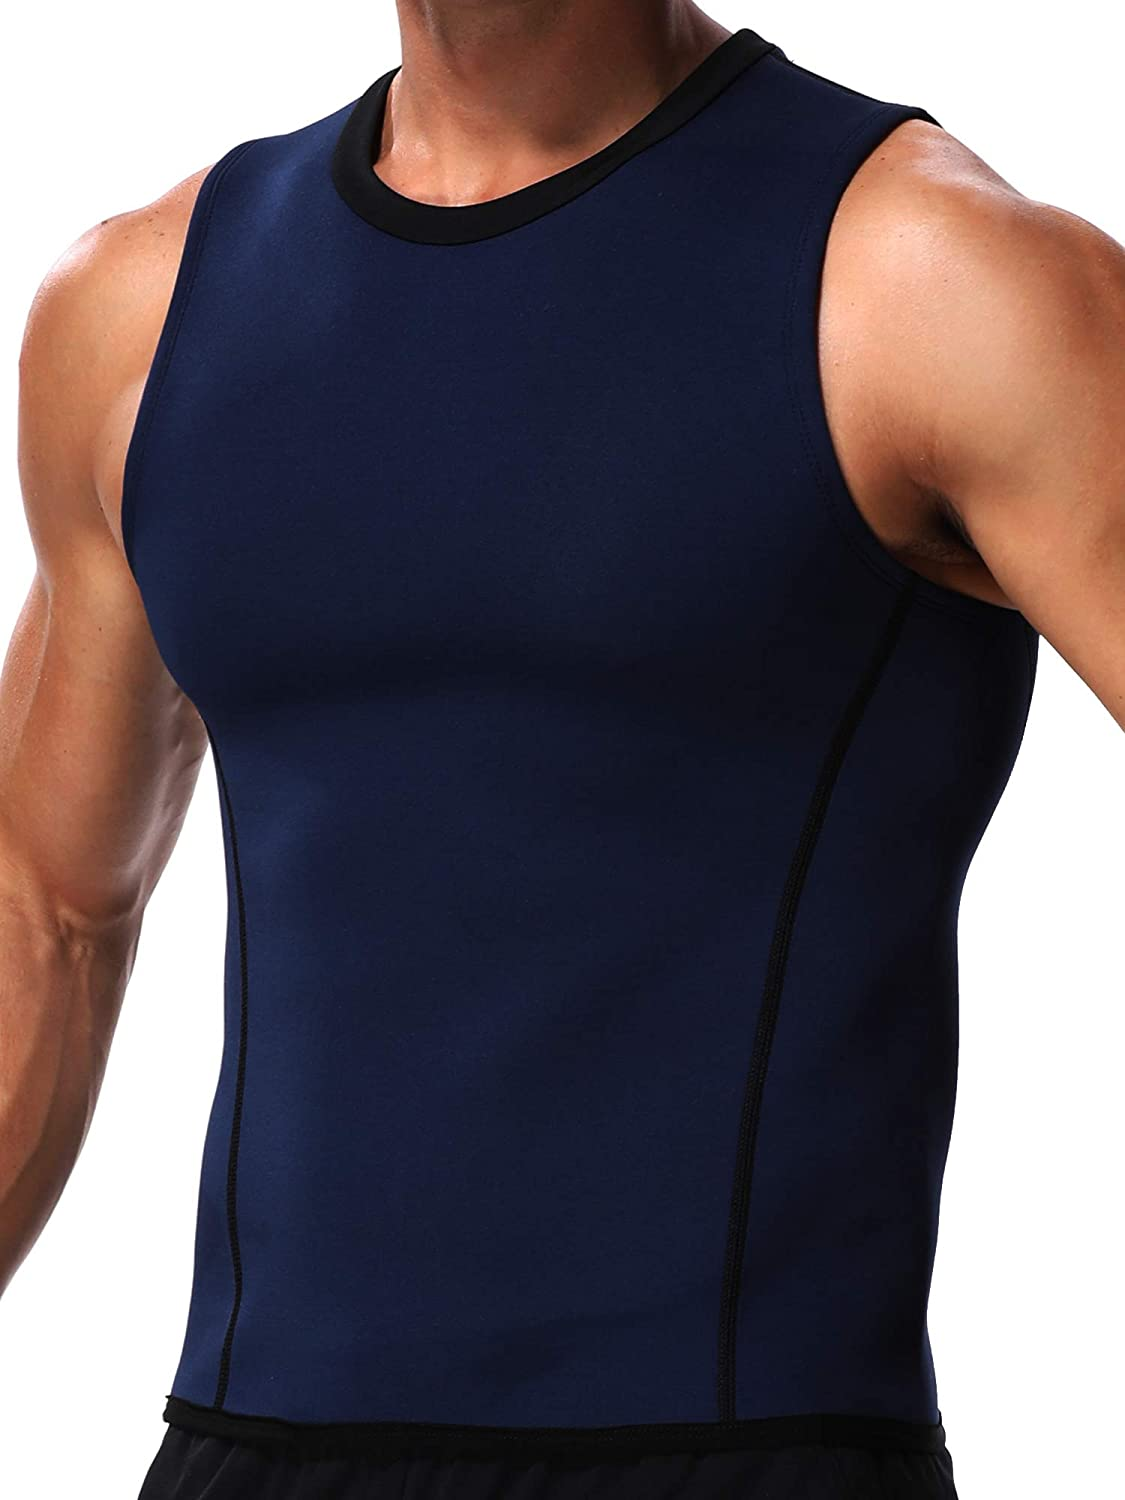 MISS MOLY Sauna Sweat Vest Mens Abs Chest Firm Control Slimming Quema Grasa Adelgazar